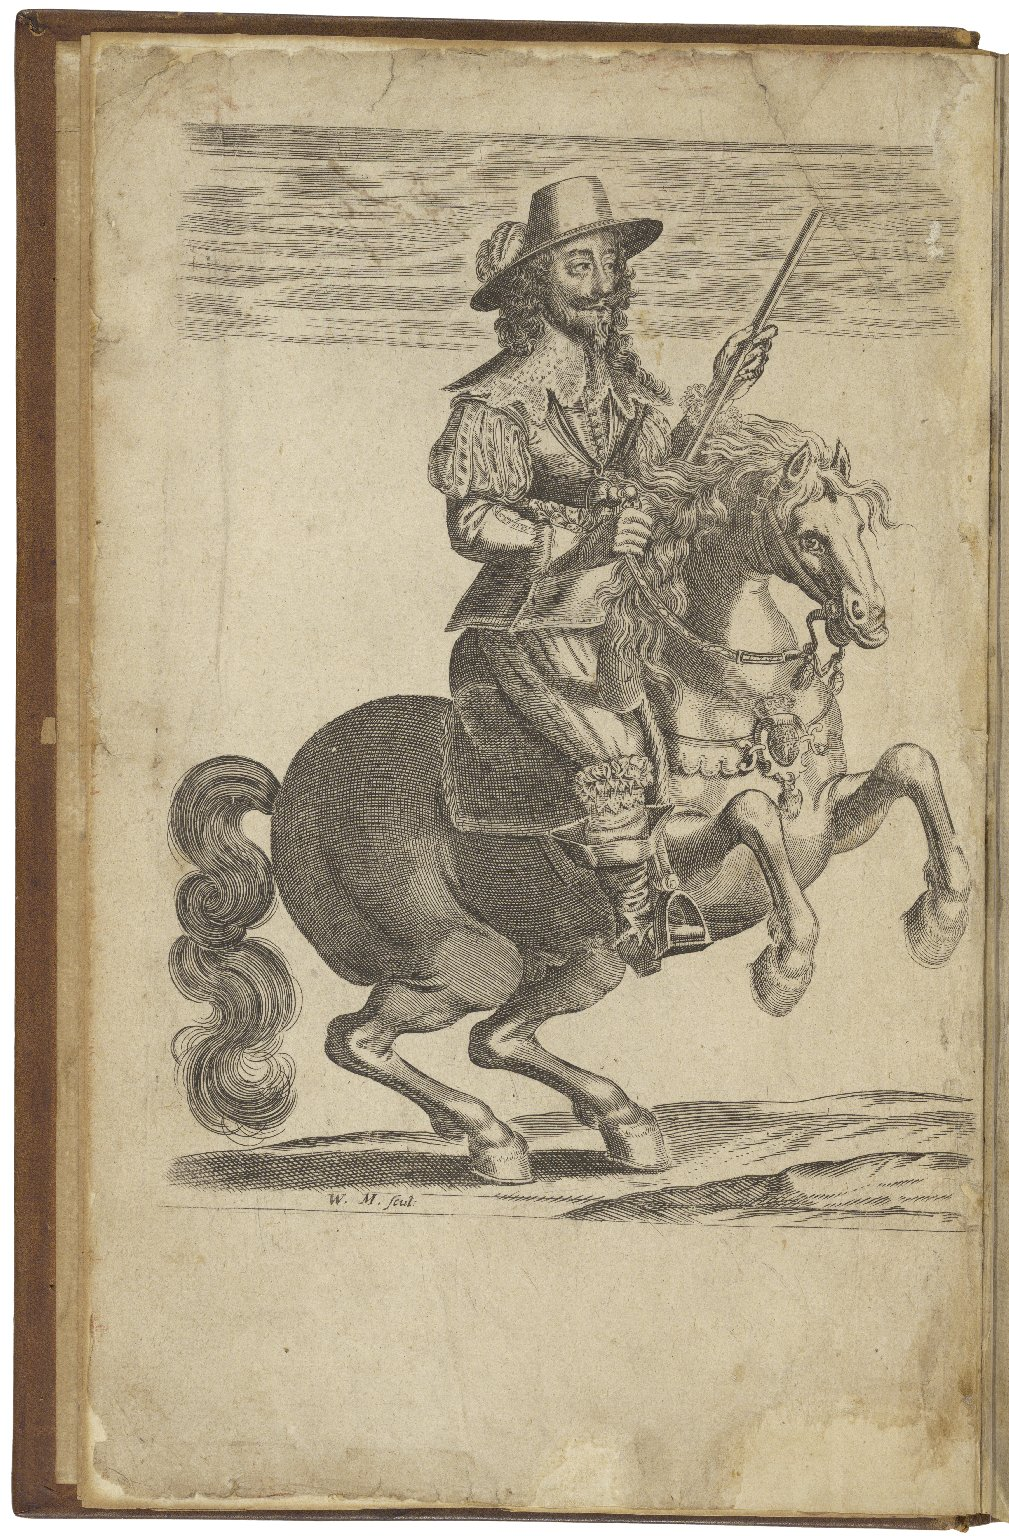 The compleat horseman and expert ferrier. In two bookes. The first, shewing the best manner of breeding good horses, with their choyce, nature, riding and dyeting . . . The second, directing the most exact and approved manner how to know and cure all mala